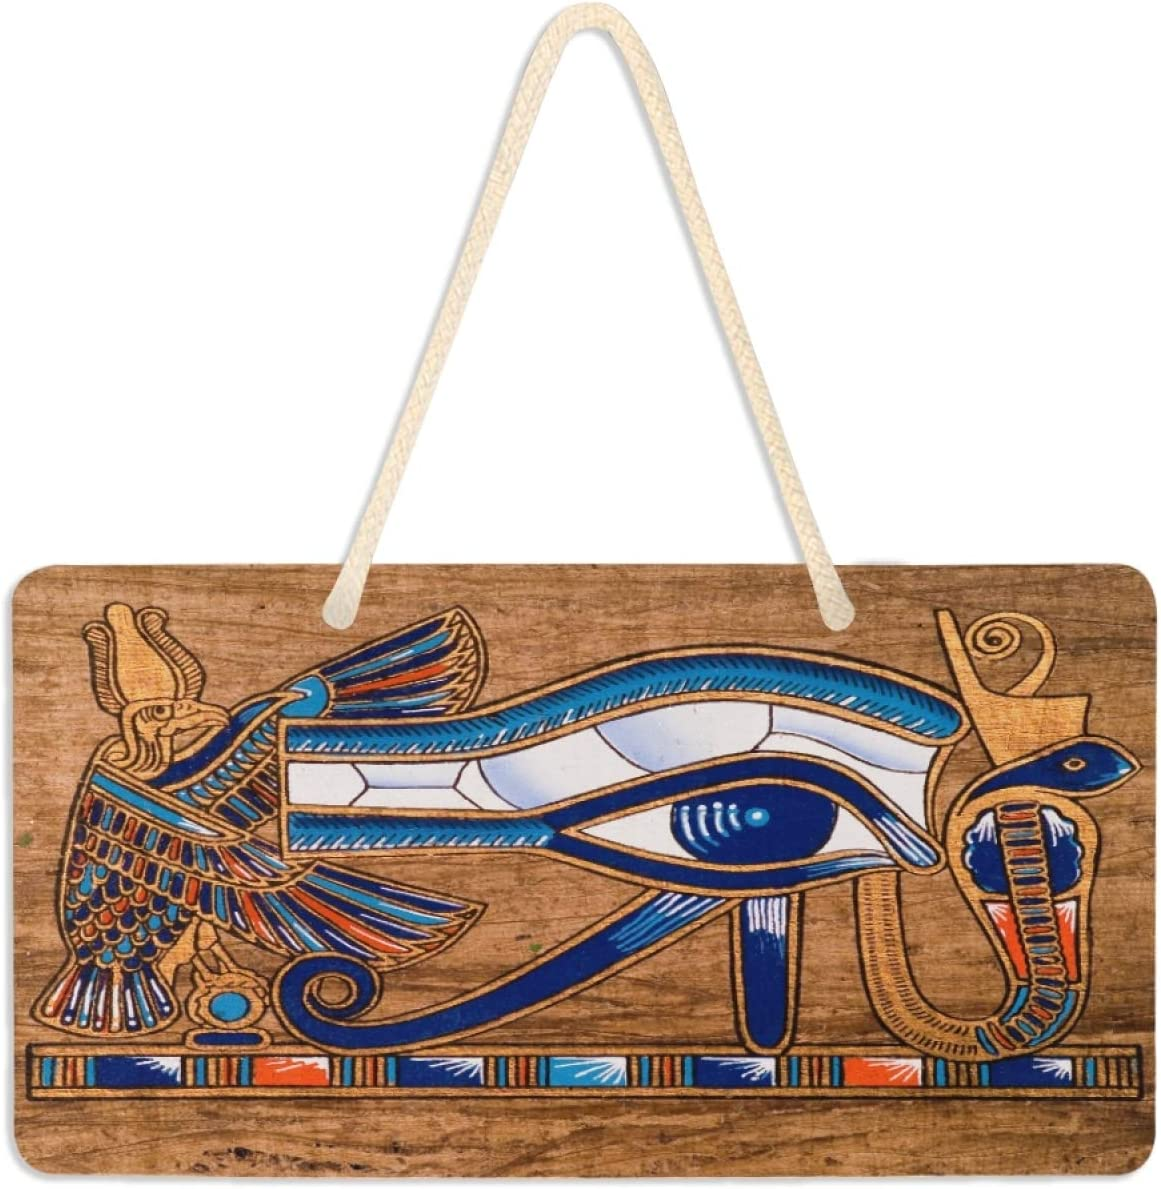 """AUUXVA YKMustwin Egyptian Horus Eye Door Hanging Sign Plate PVC Dirty Resistant, Waterproof Wall Sign Decor Hanging Plaque with Rope for Home Garden Yard 11"""" x 6"""""""